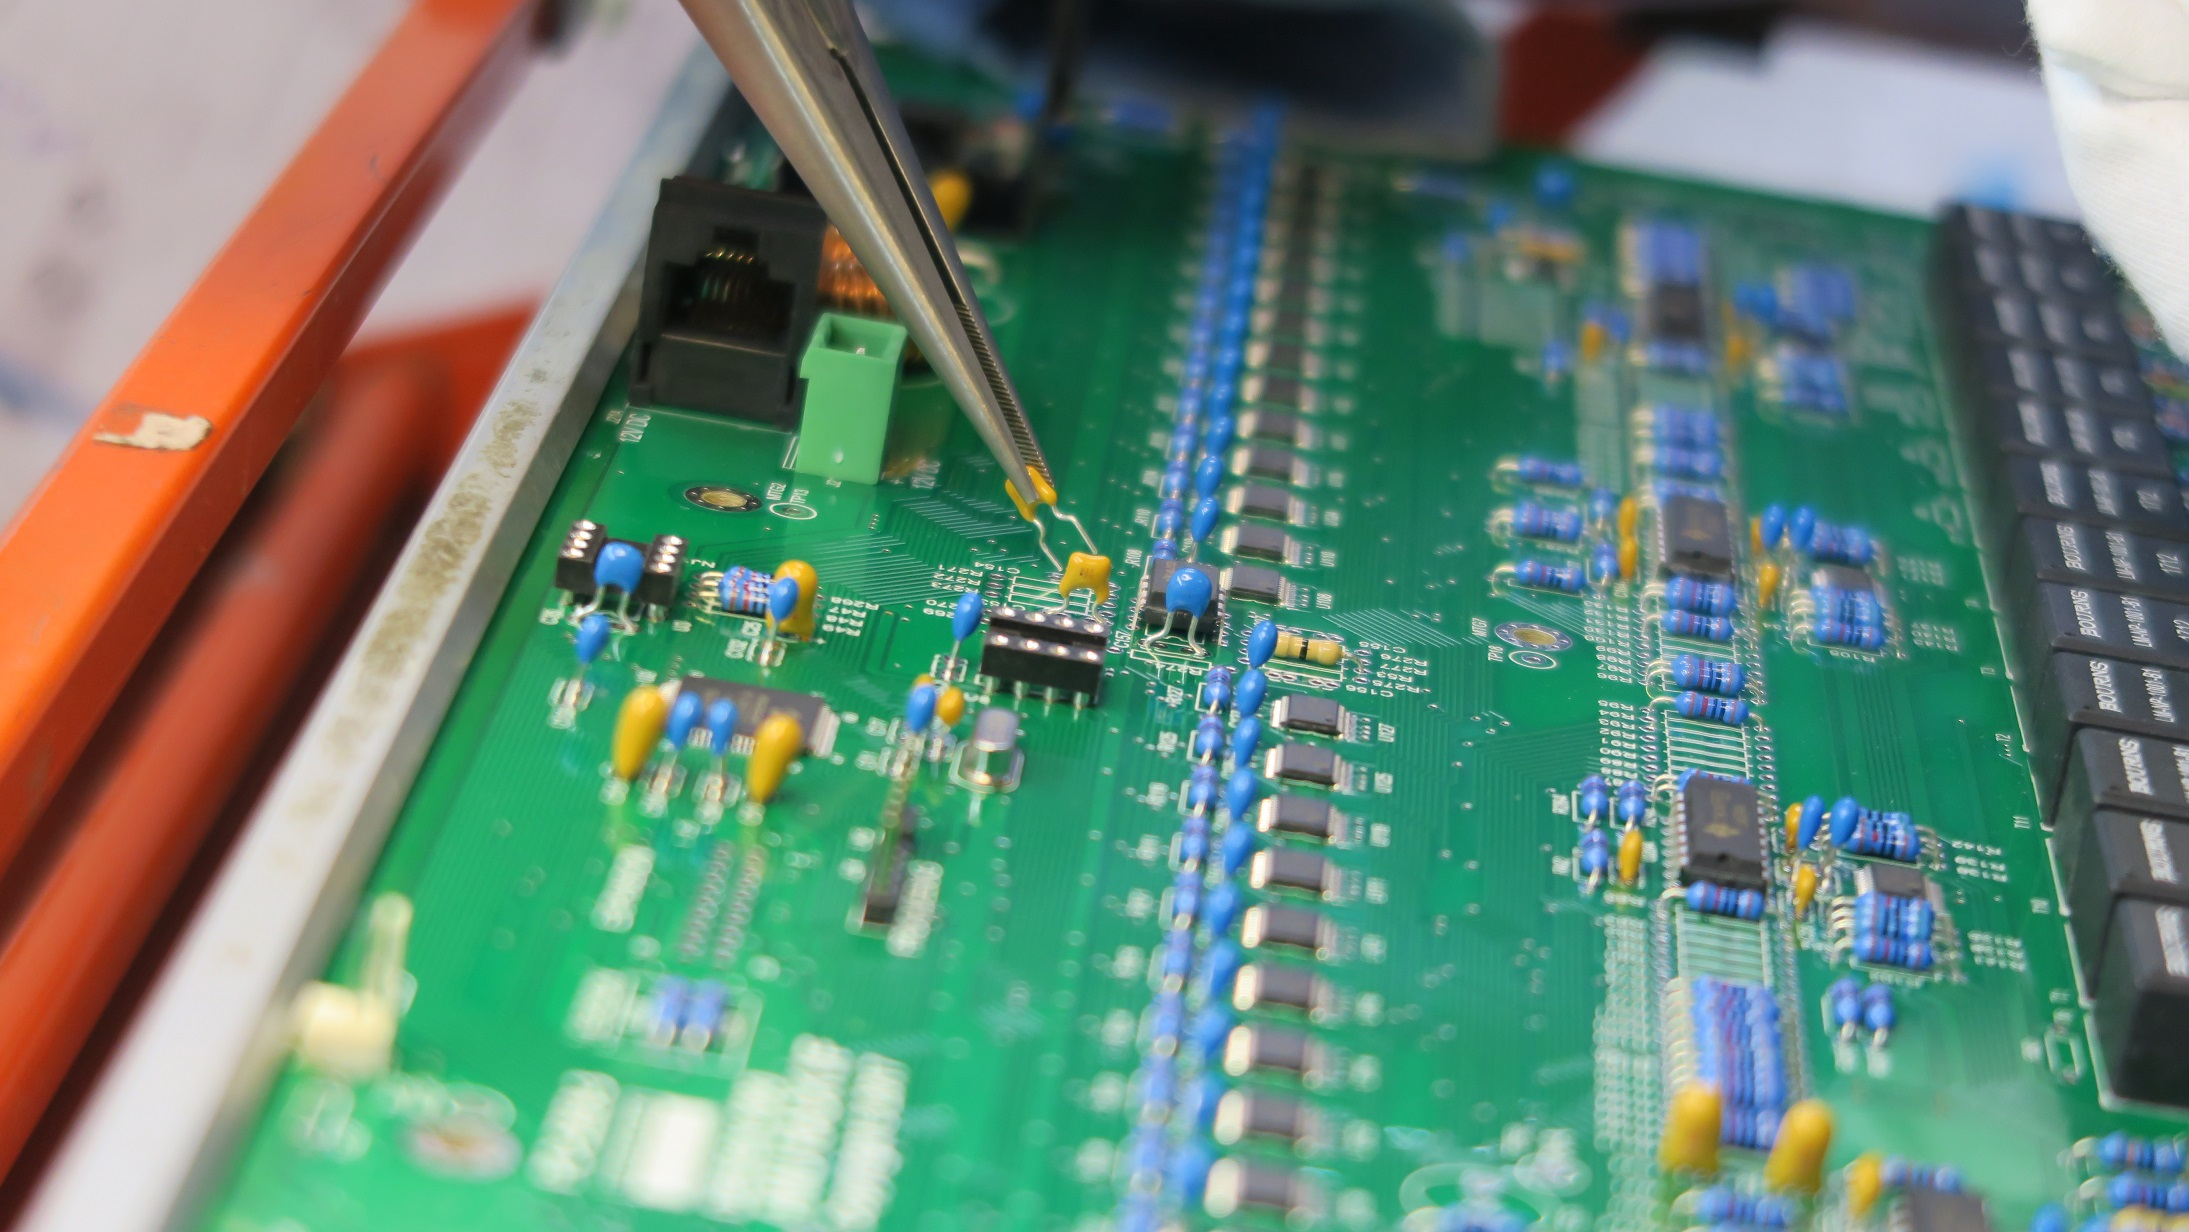 Placing a component on a PCB using a tool